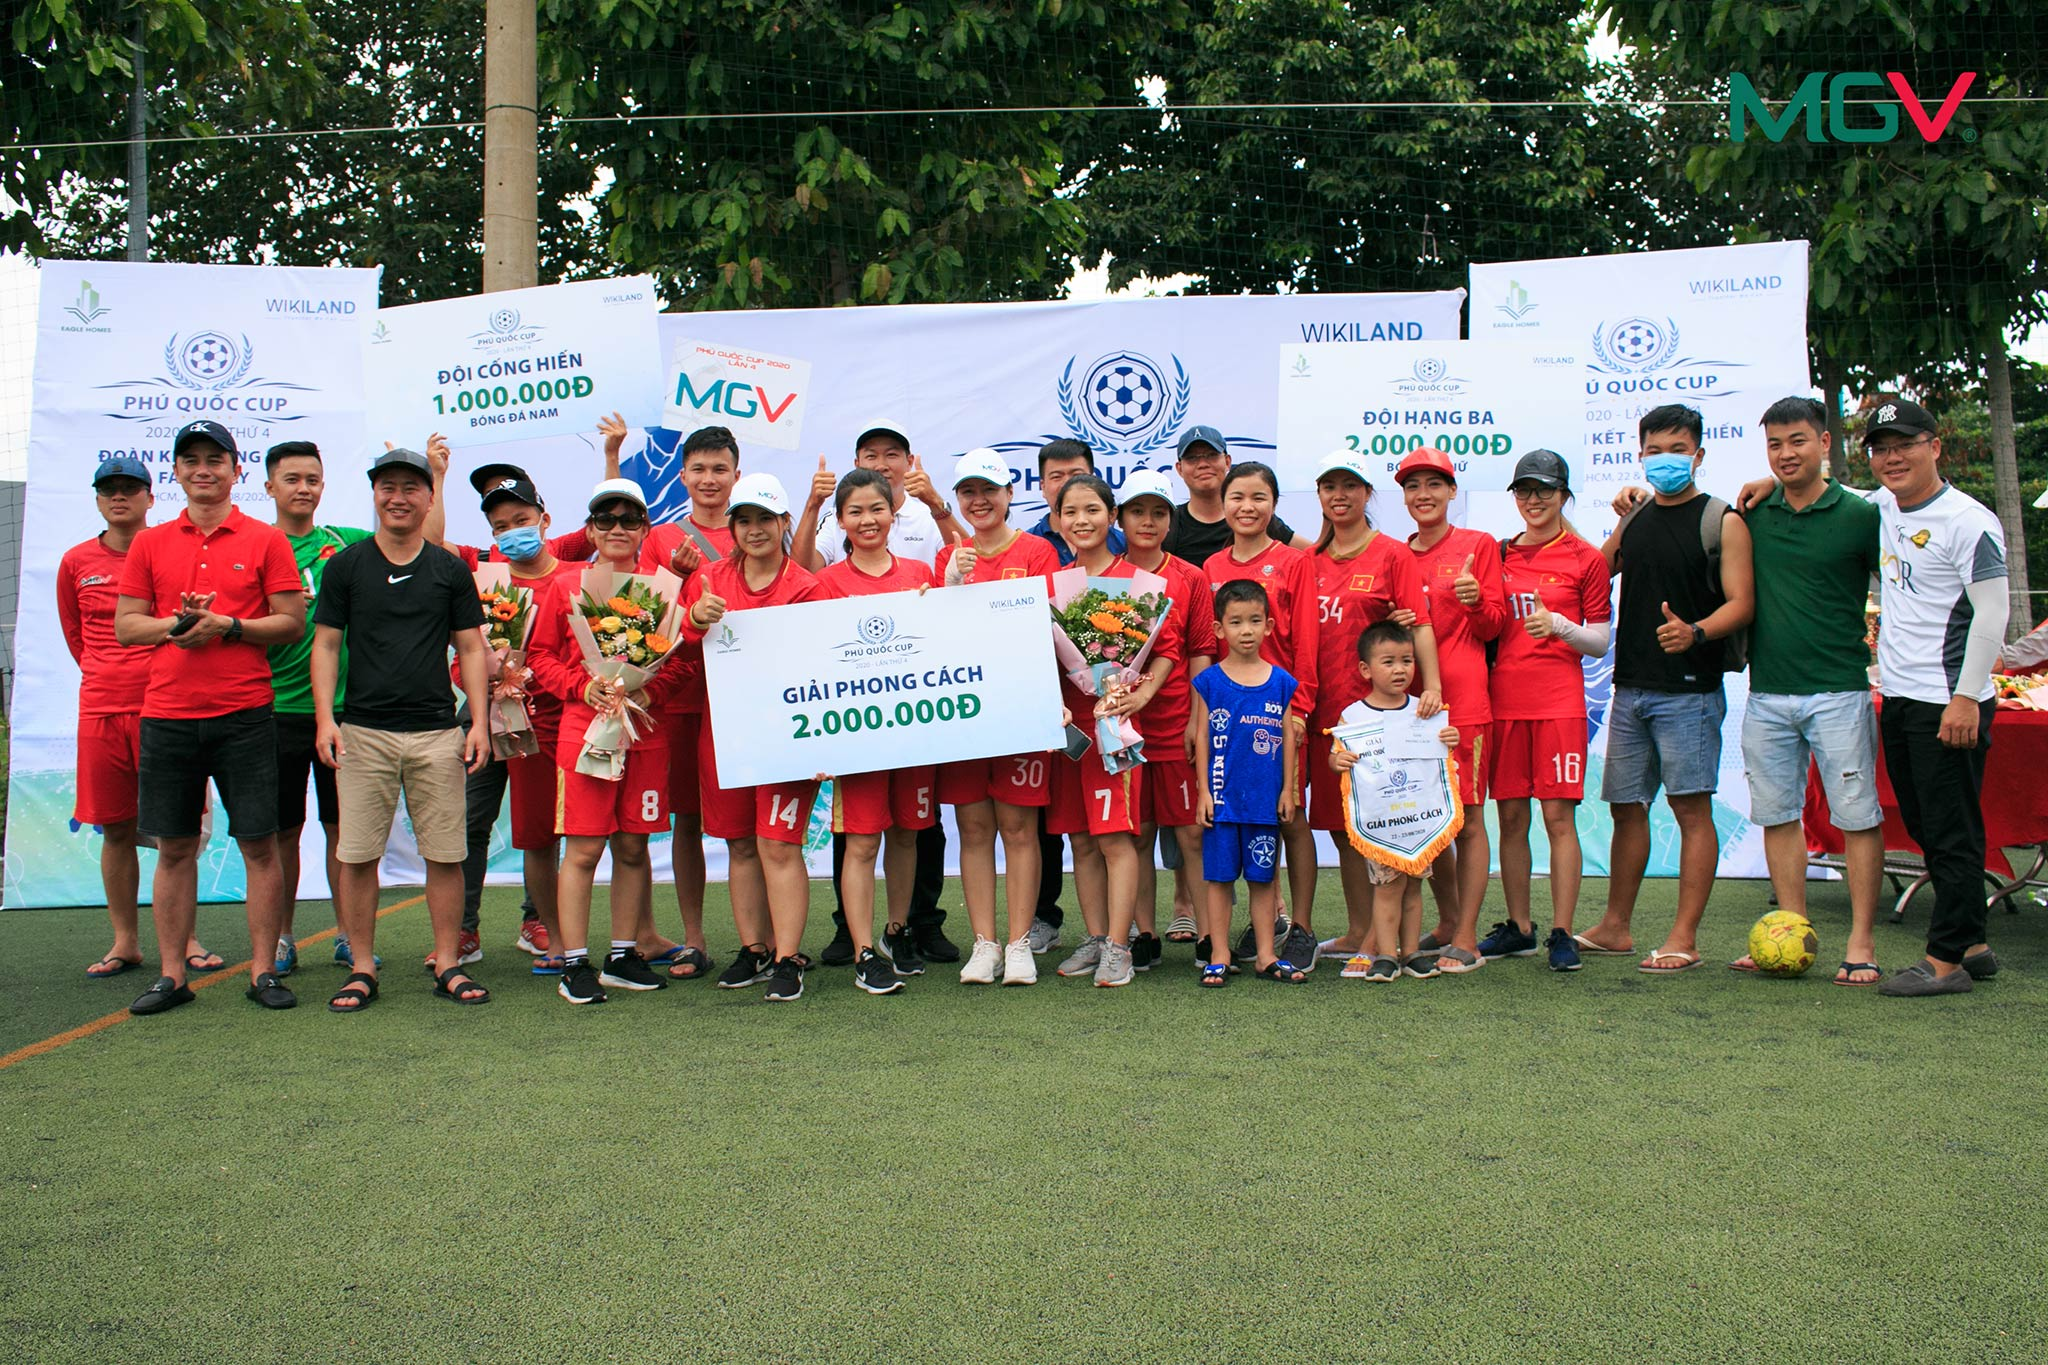 Phu Quoc Cup 3